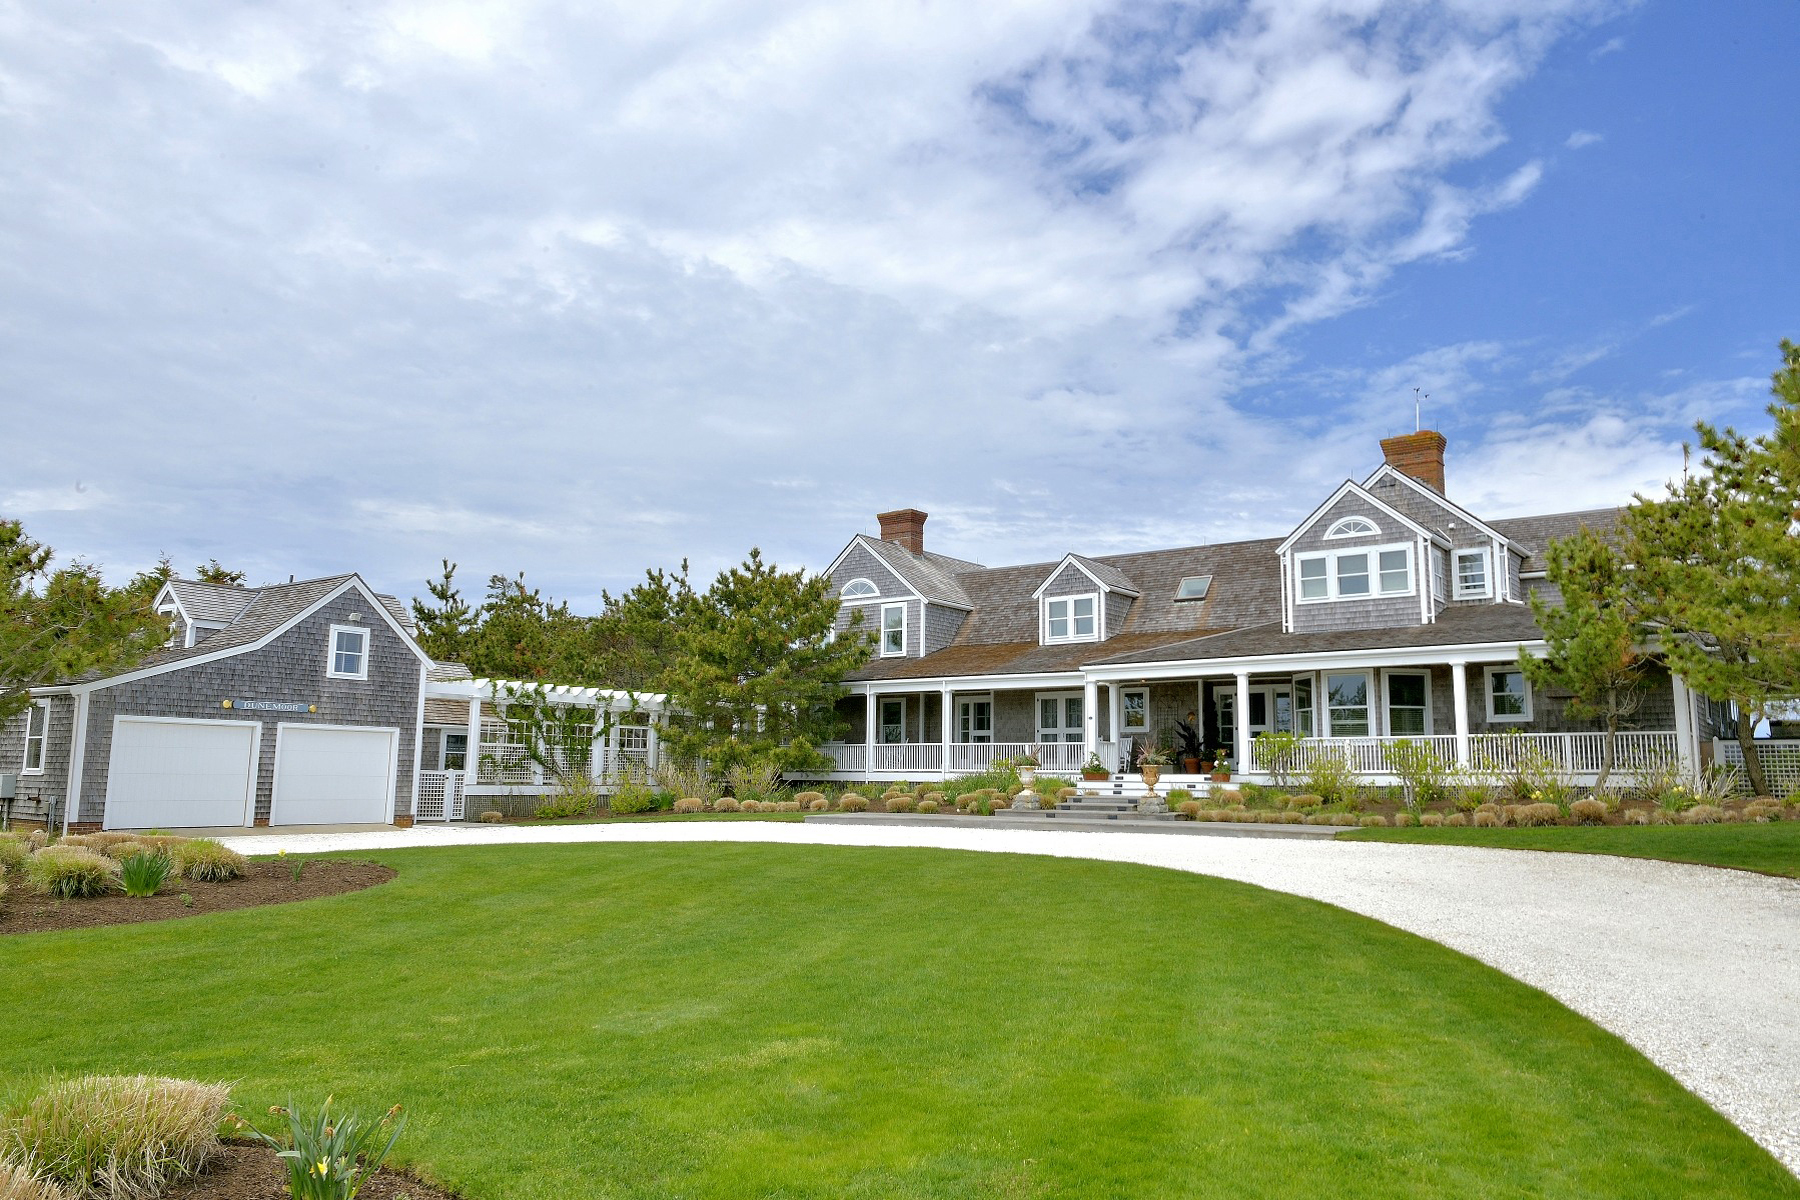 단독 가정 주택 용 매매 에 Spectacular Oceanfront Dionis! 119 Eel Point Road 119 R Eel Point Road Nantucket, 매사추세츠 02554 미국